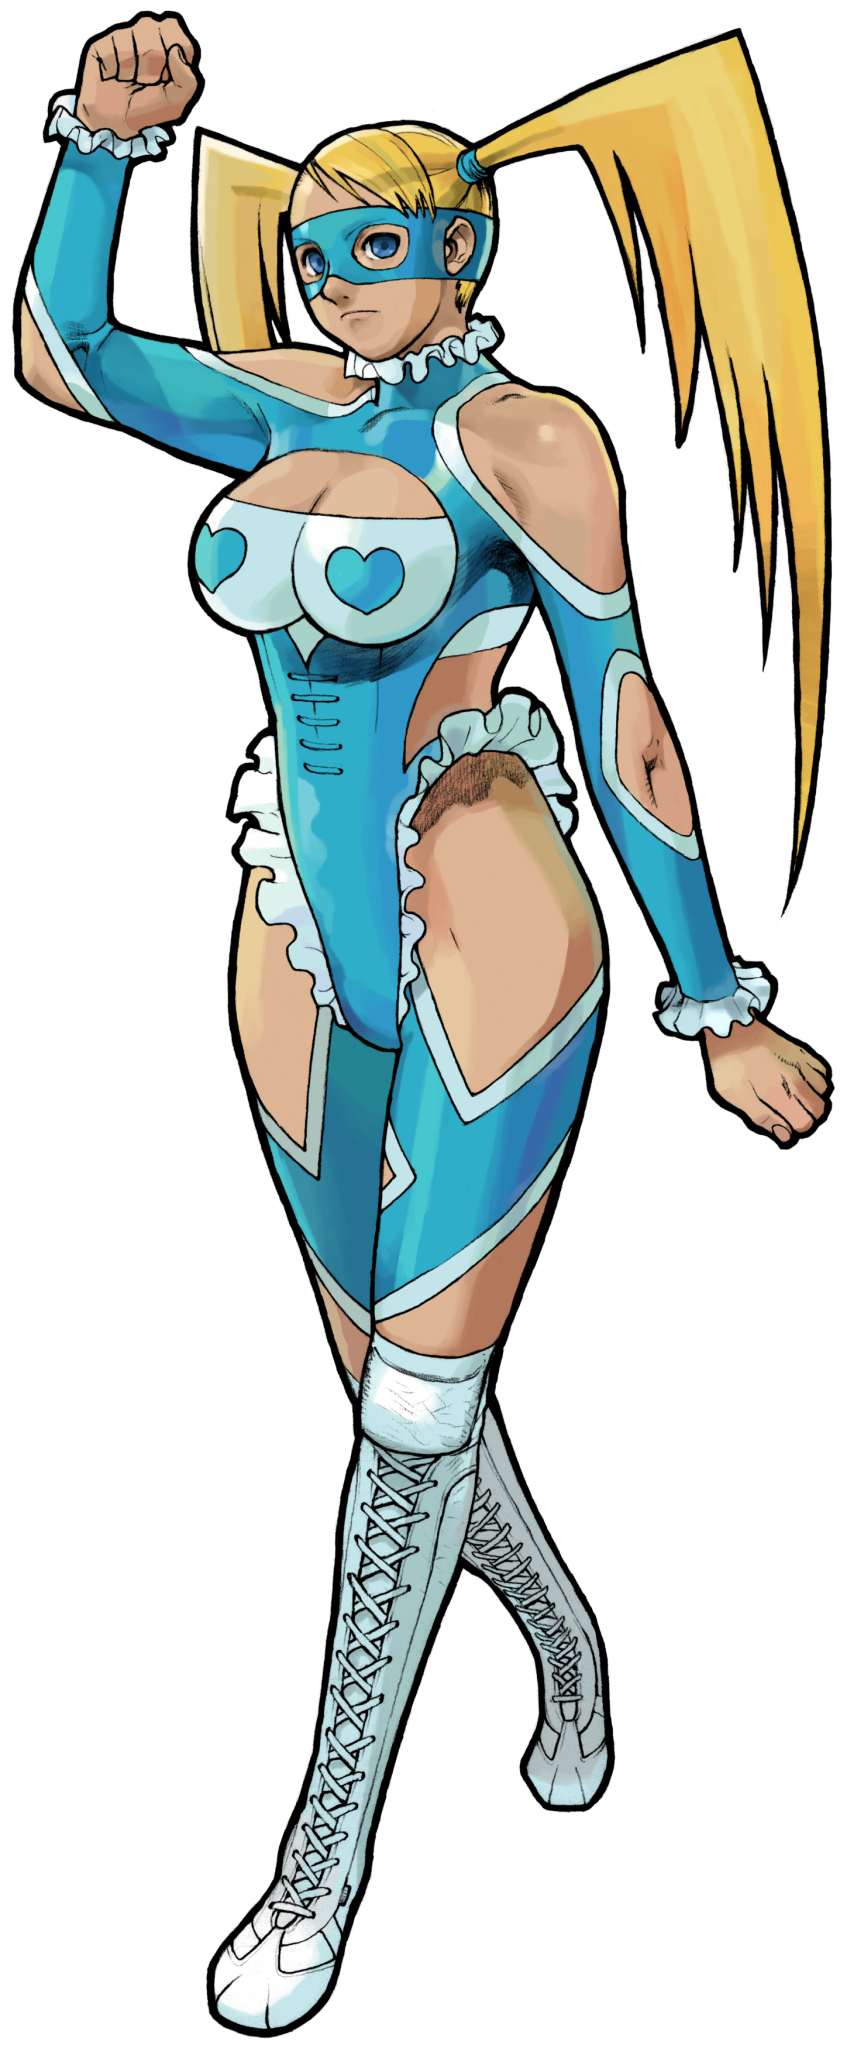 Gallery:R. Mika